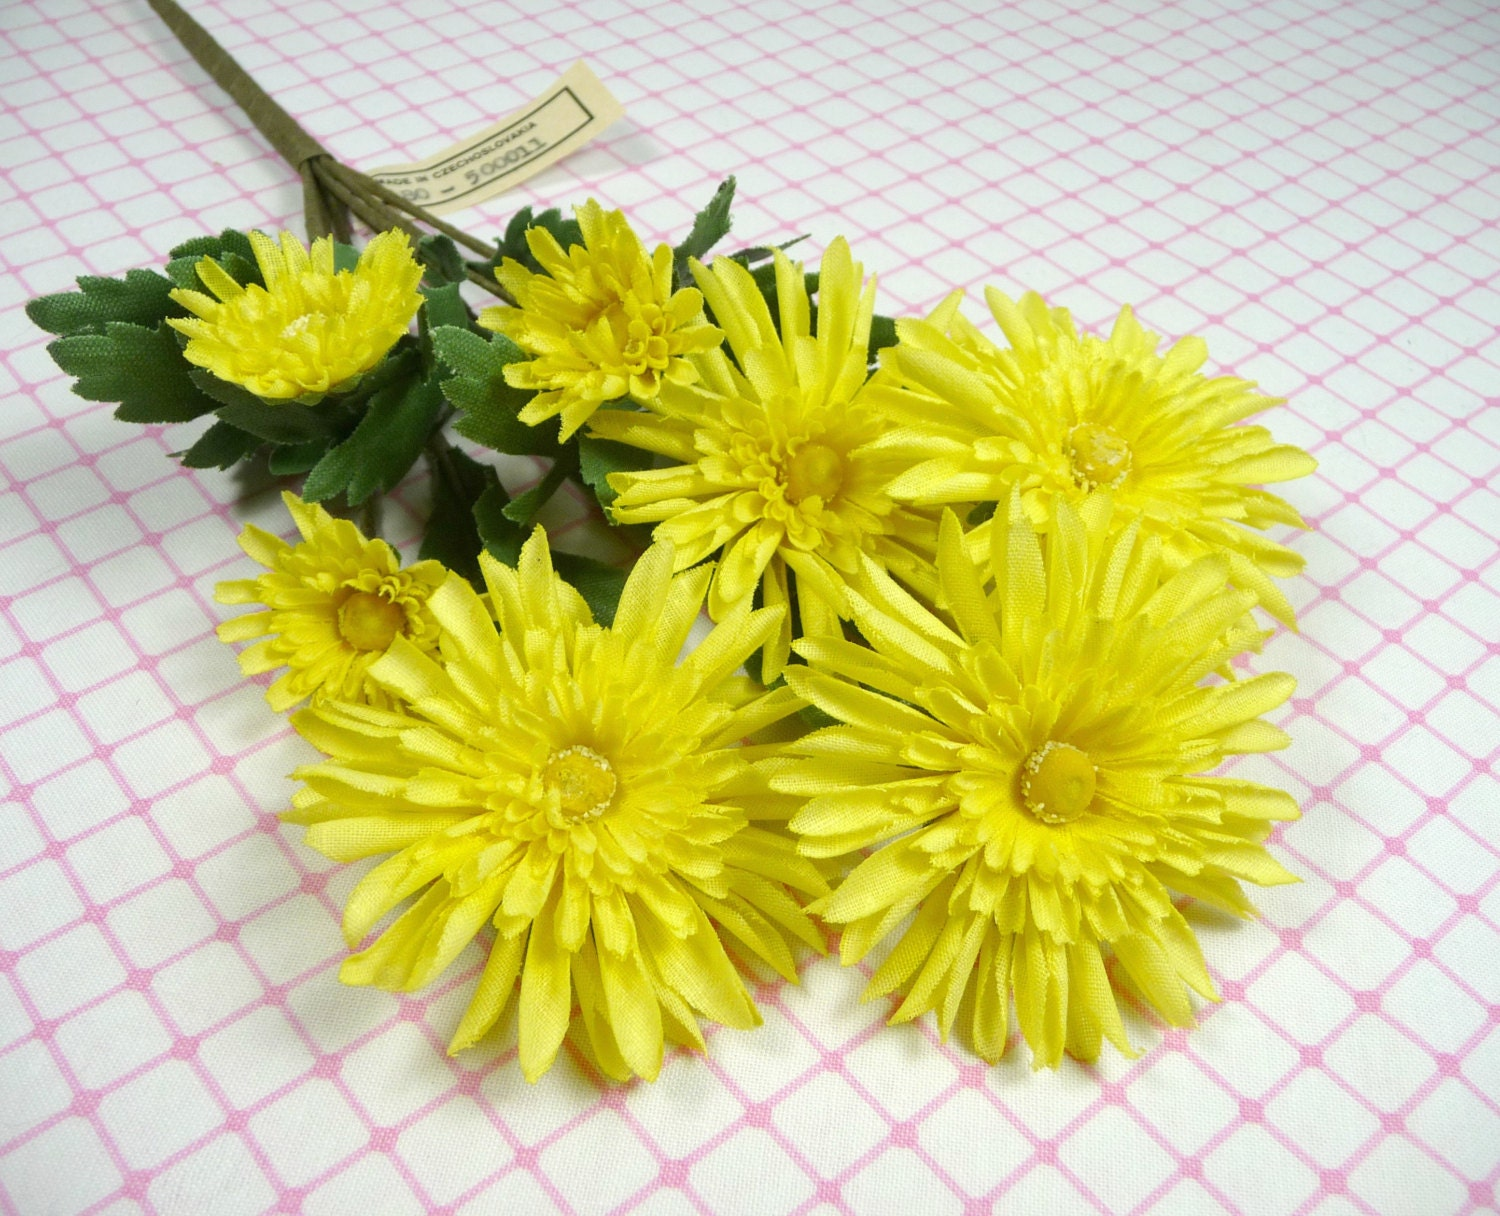 Vintage Millinery Chrysanthemum Flowers Spray of 7 Bright Sunny Yellow NOS for Hats, Wreaths, Weddings - APinkSwan